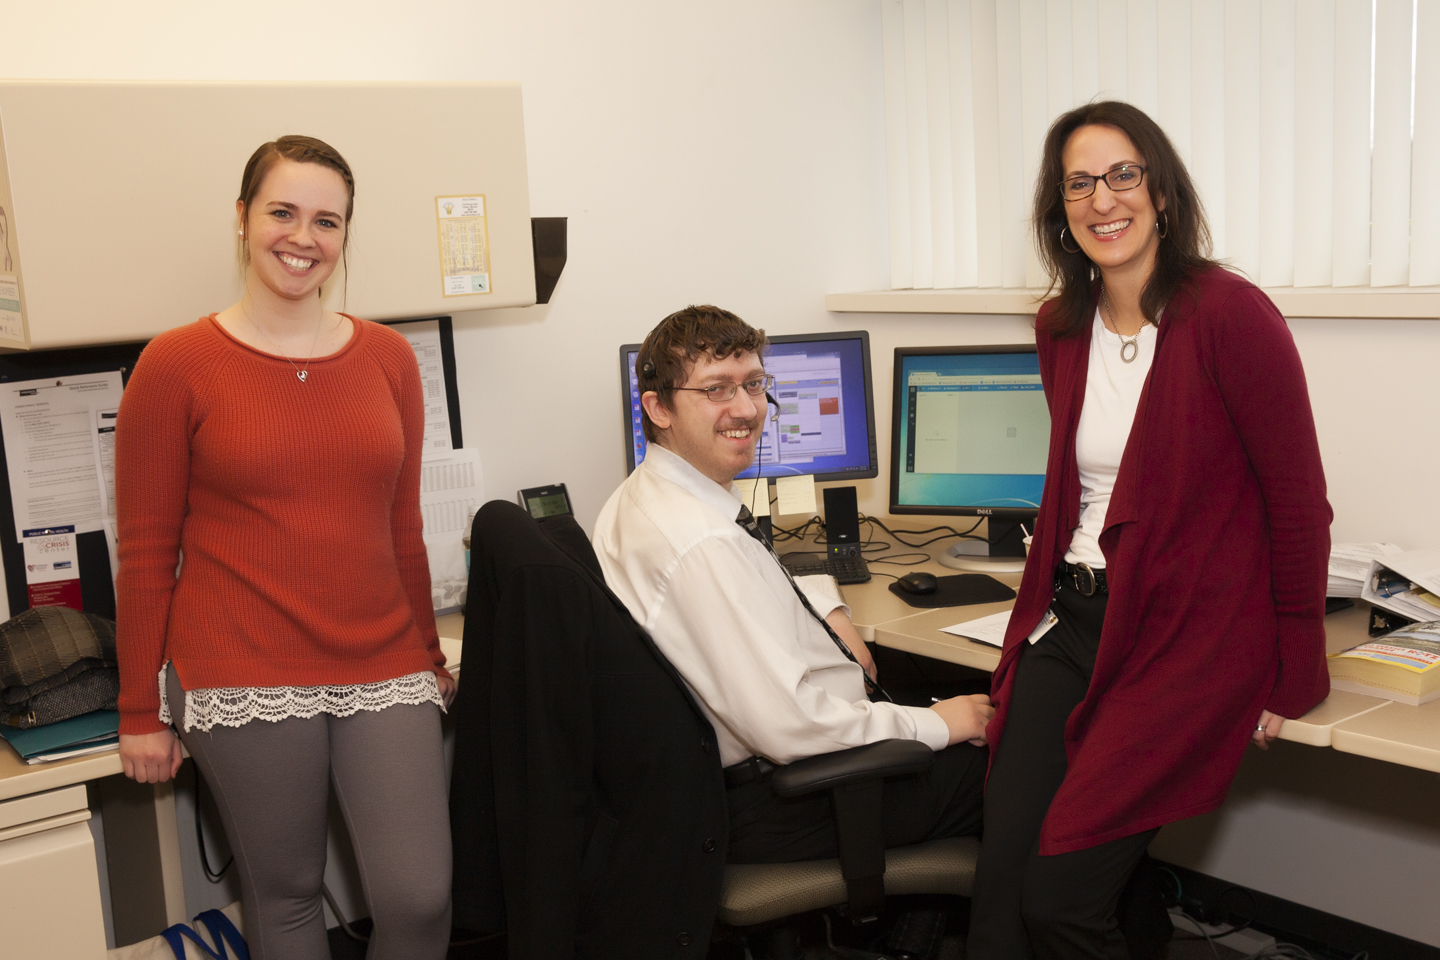 JHelp Resource Center Staff: (left) Brooke Flaggman, Boris Milter and Resource Center Director, Randee Black